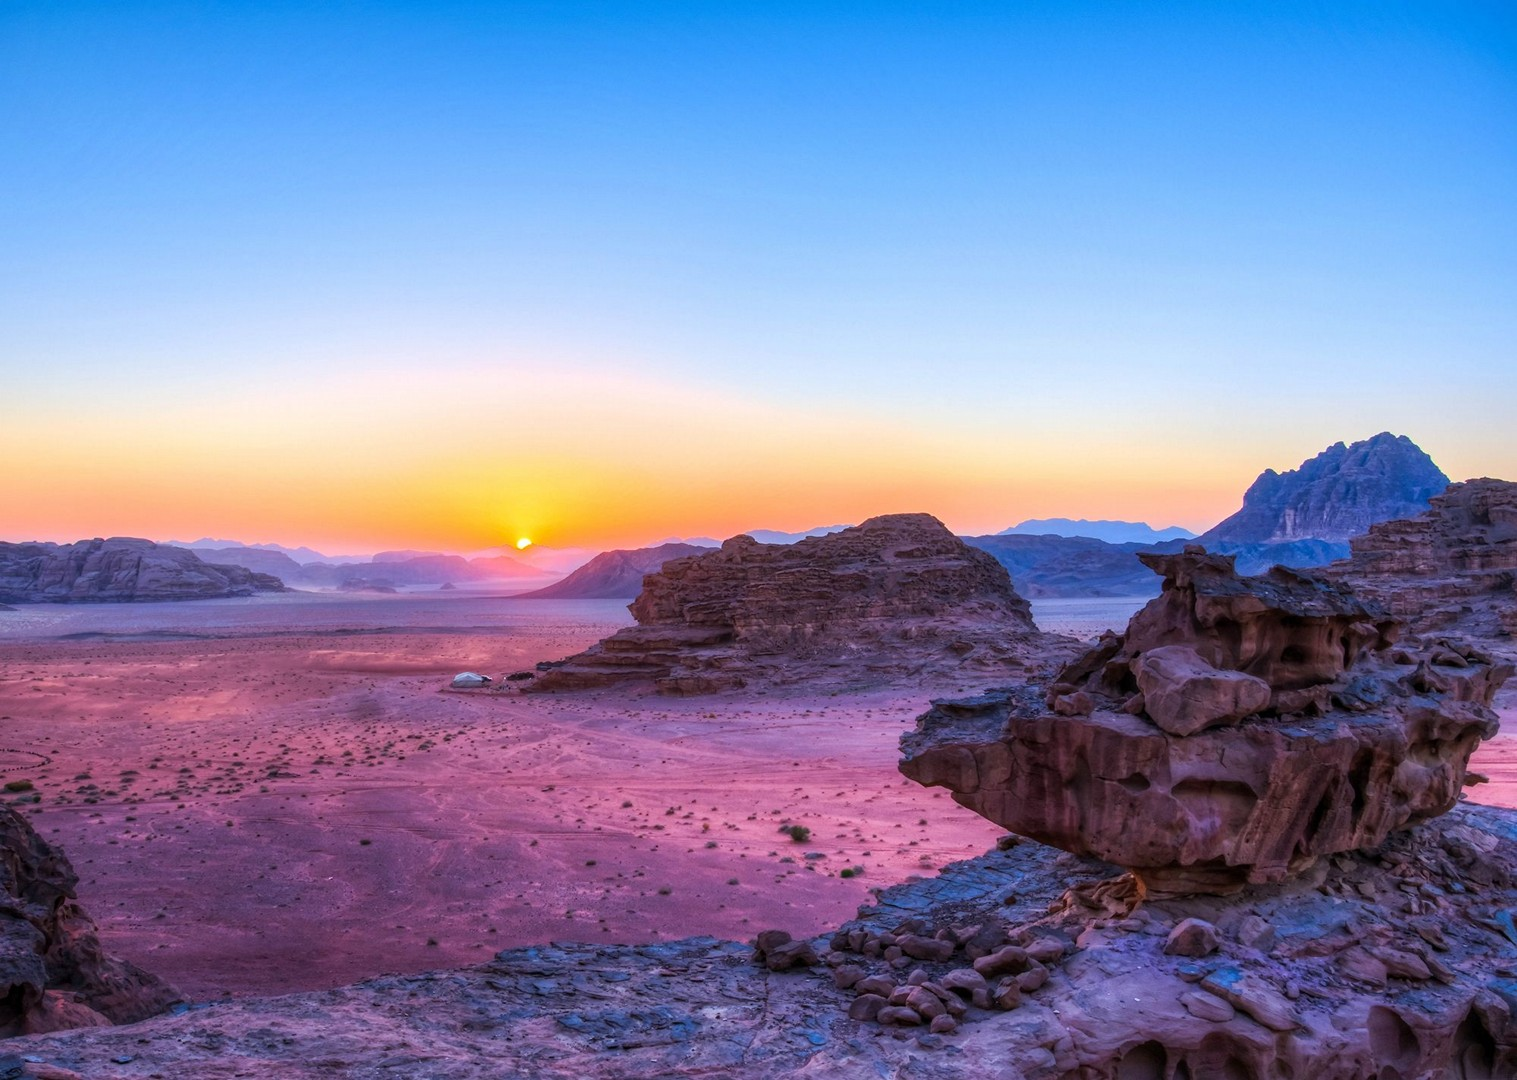 sunset-jordan-cycling-with-saddle-skedaddle-guided-tour-holiday.jpg - NEW! Jordan - Petra, Wadi Rum & the Dead Sea - Cycling Adventures